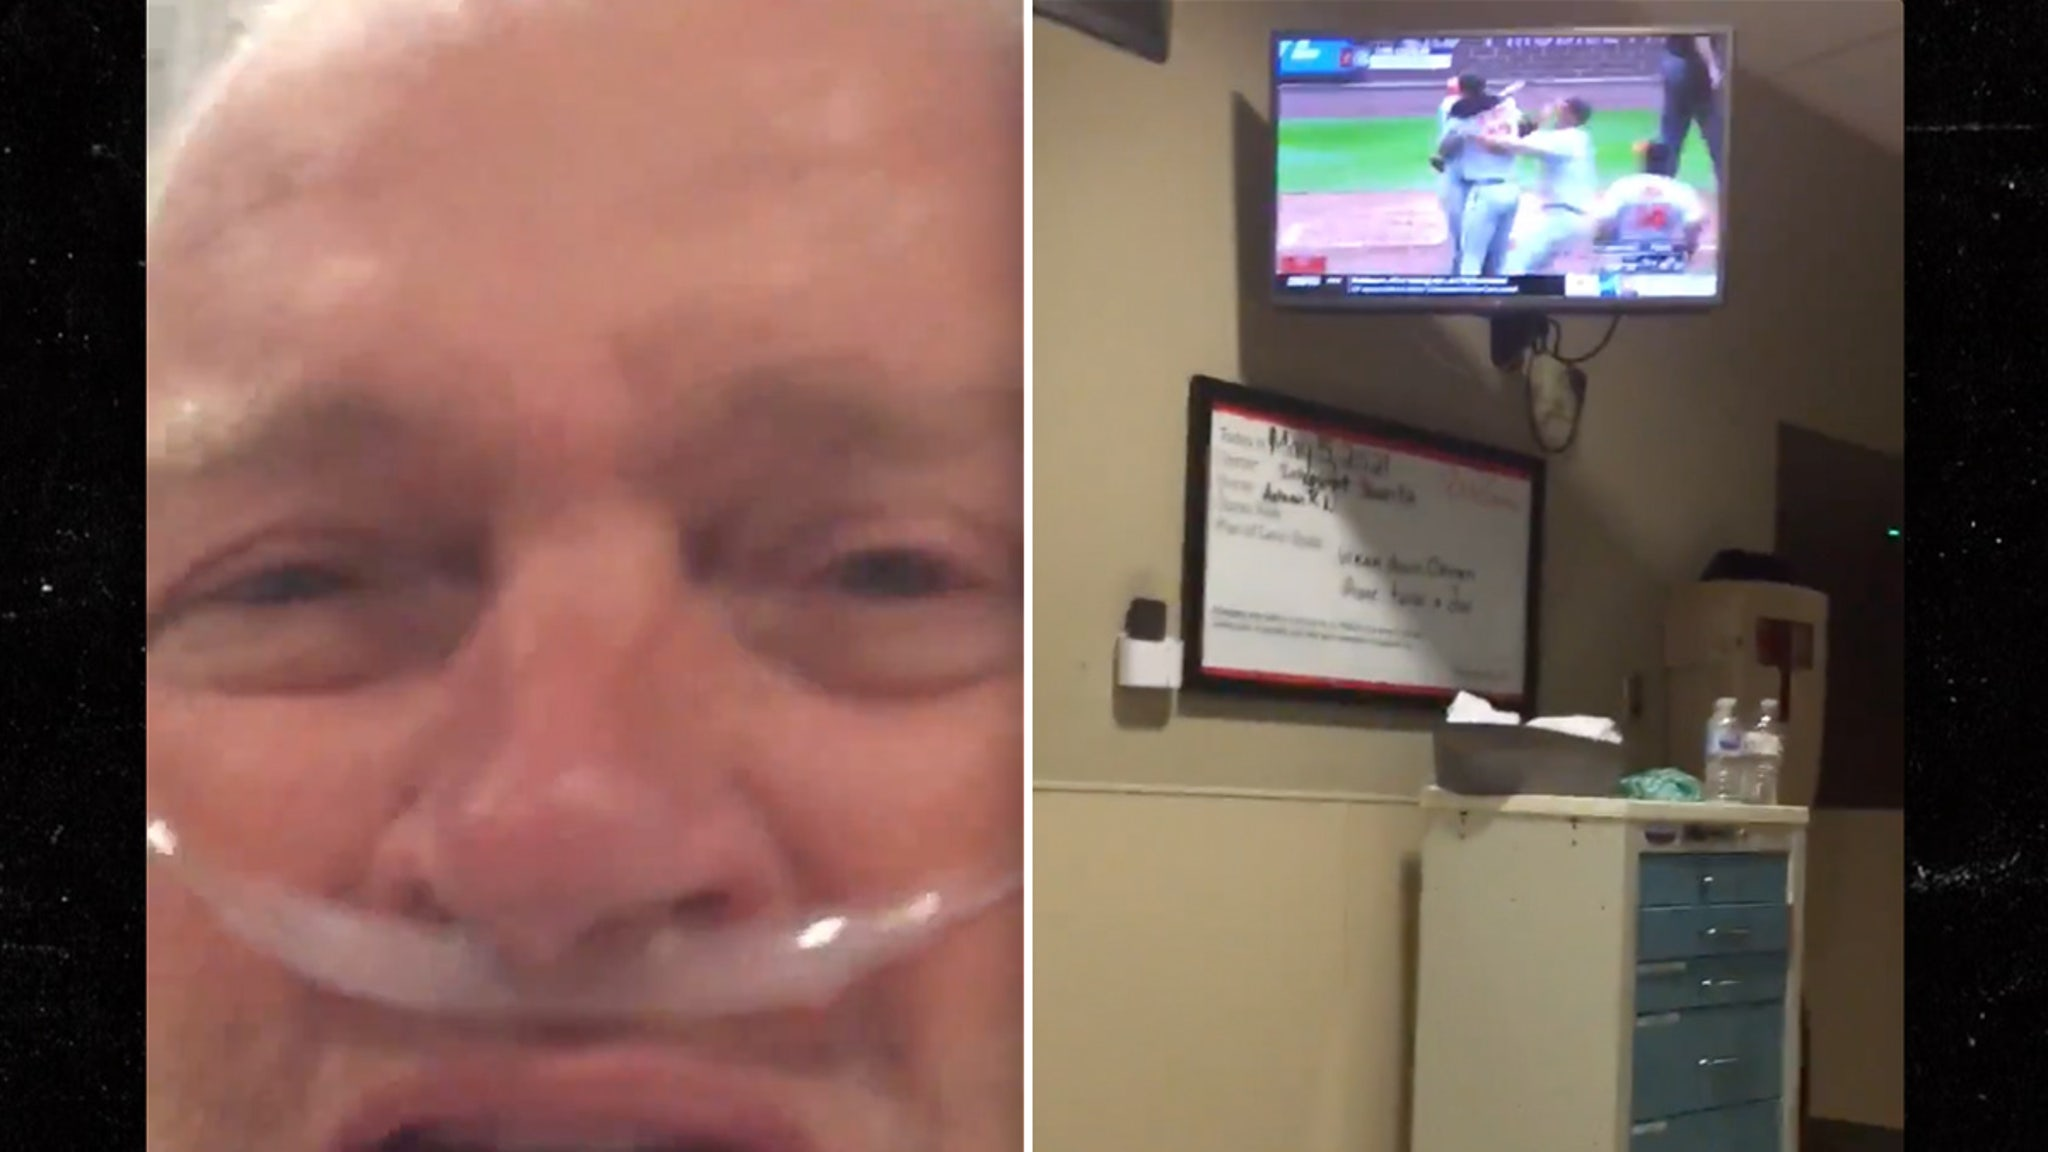 Orioles Fan Battling COVID In Hospital Cries After John Means' No-Hitter, 'He Did It!'